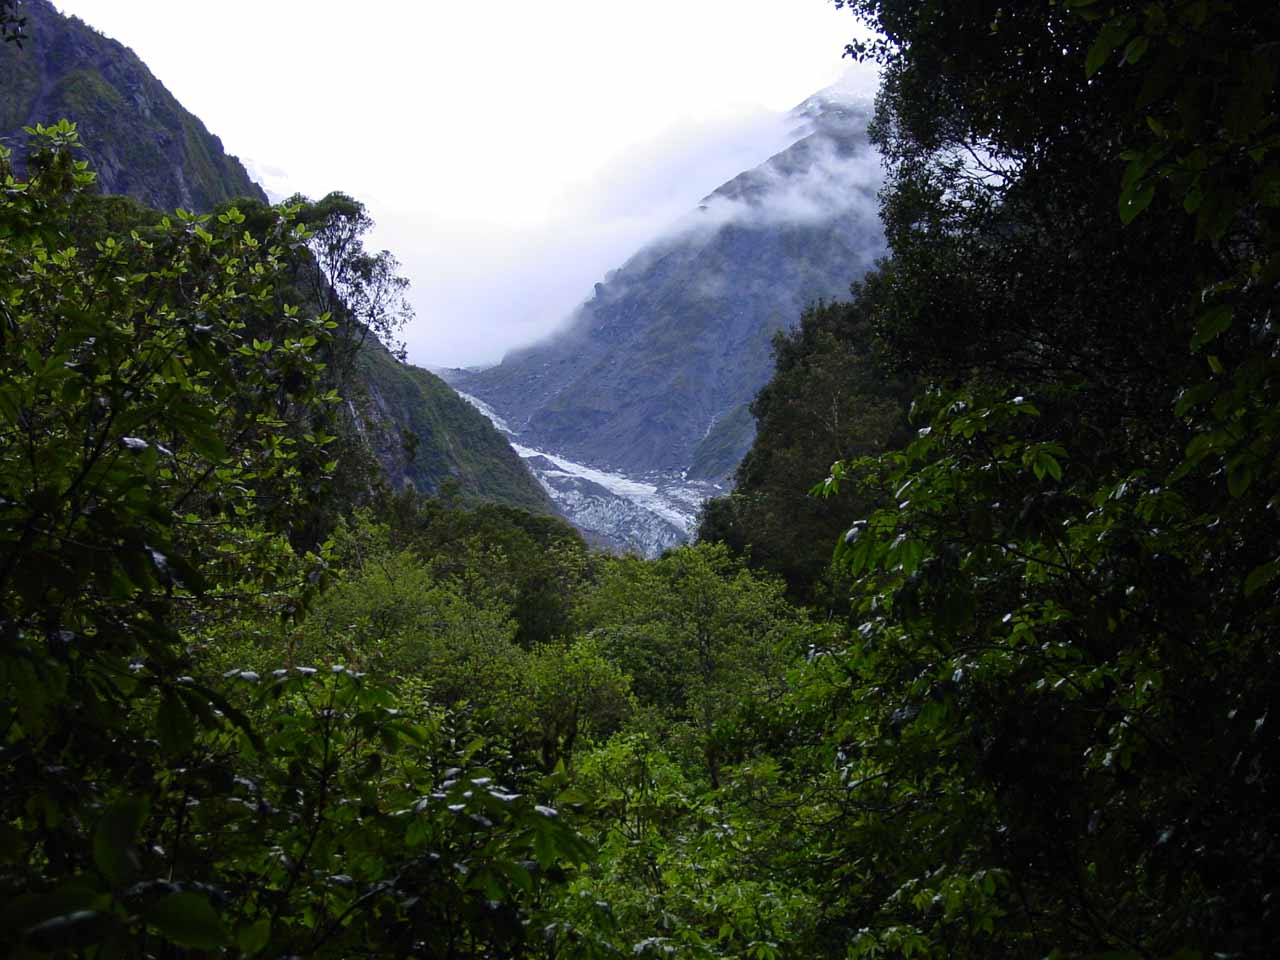 Partial view of the Fox Glacier in November 2004 from a lookout on the road to the south side of the Fox River (opposite the glacier access road)